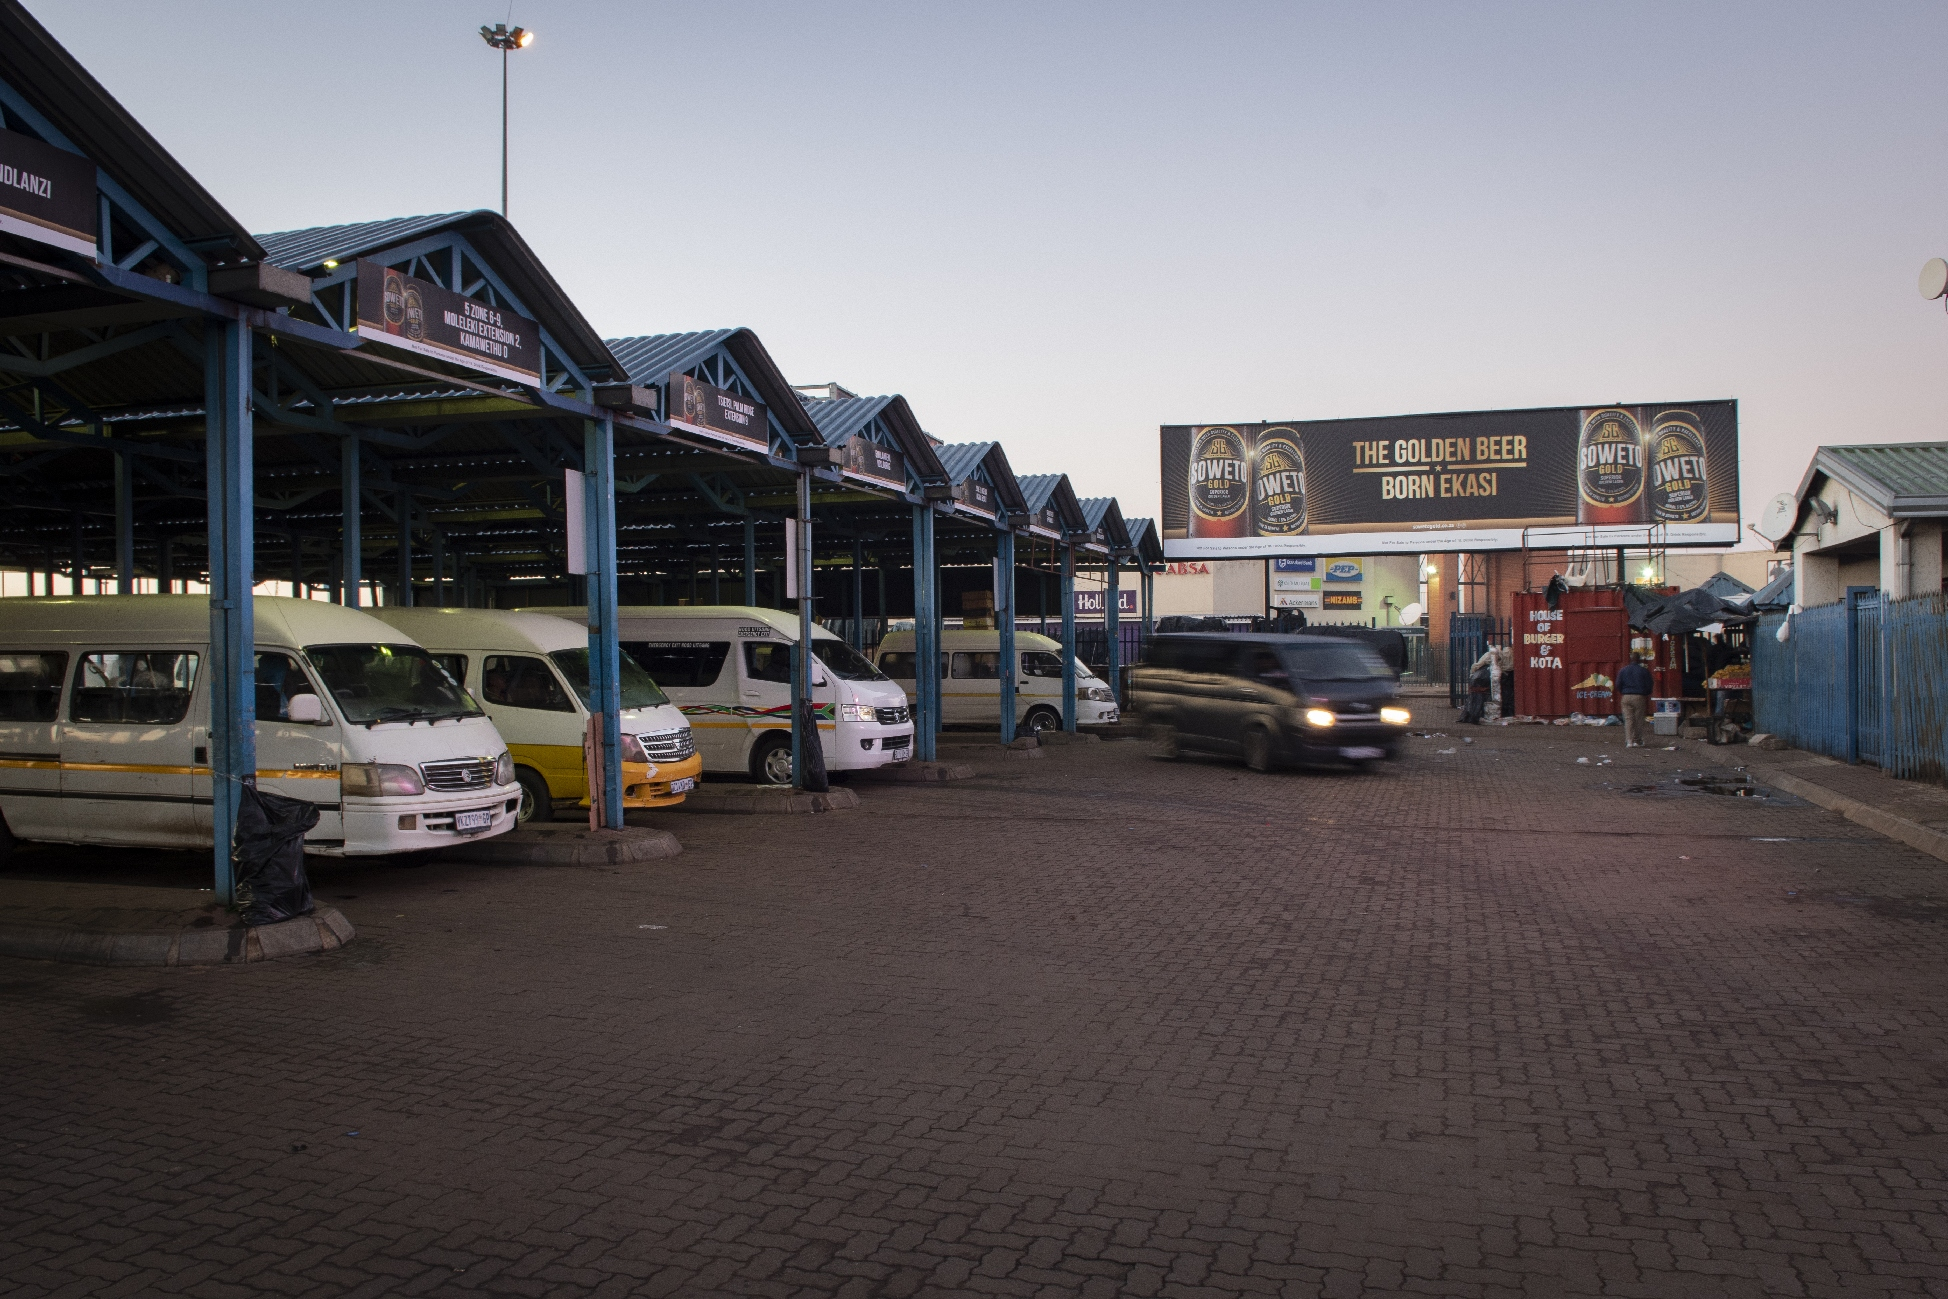 Transit Ads implements Rank campaign for Soweto Gold